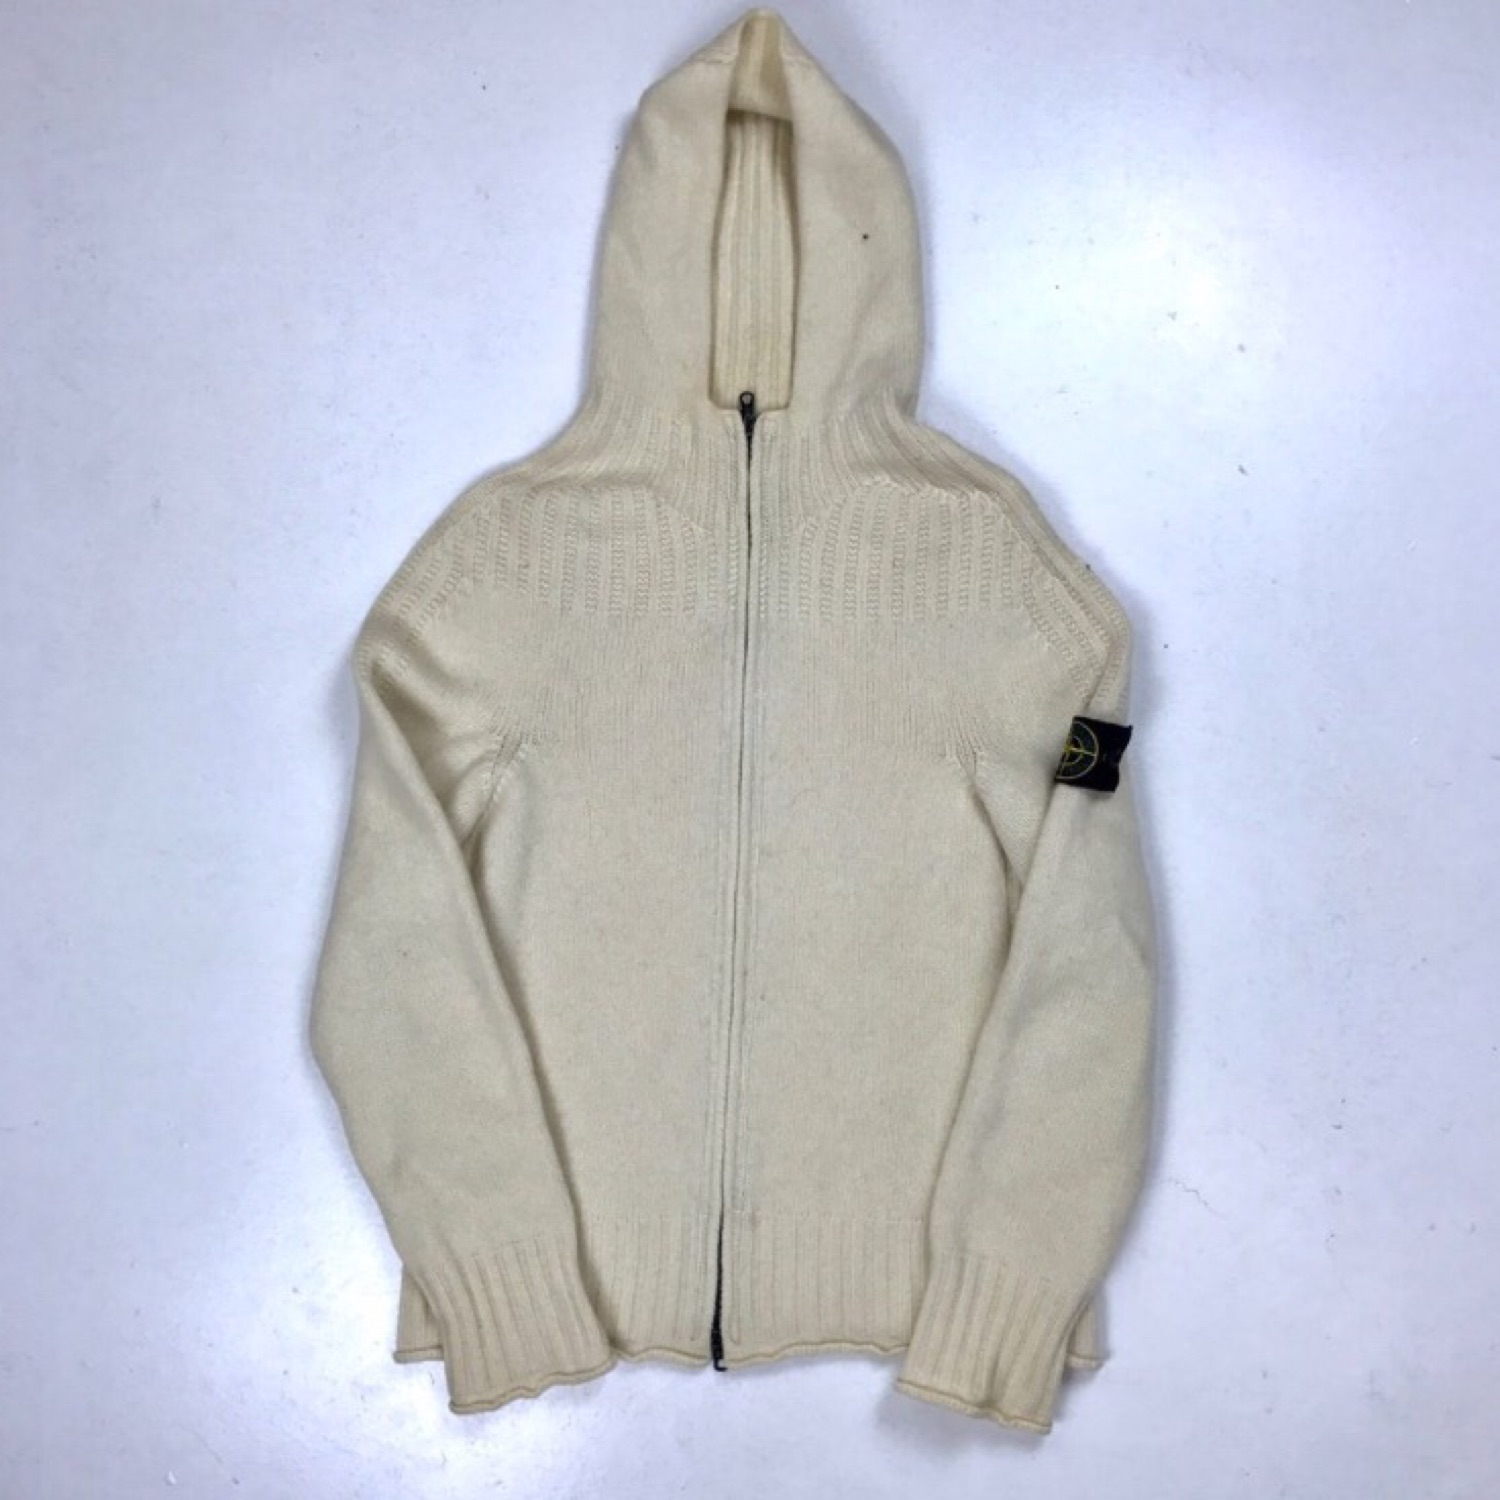 Stone Island AW2002 Zip Up Beige Hooded Jumper